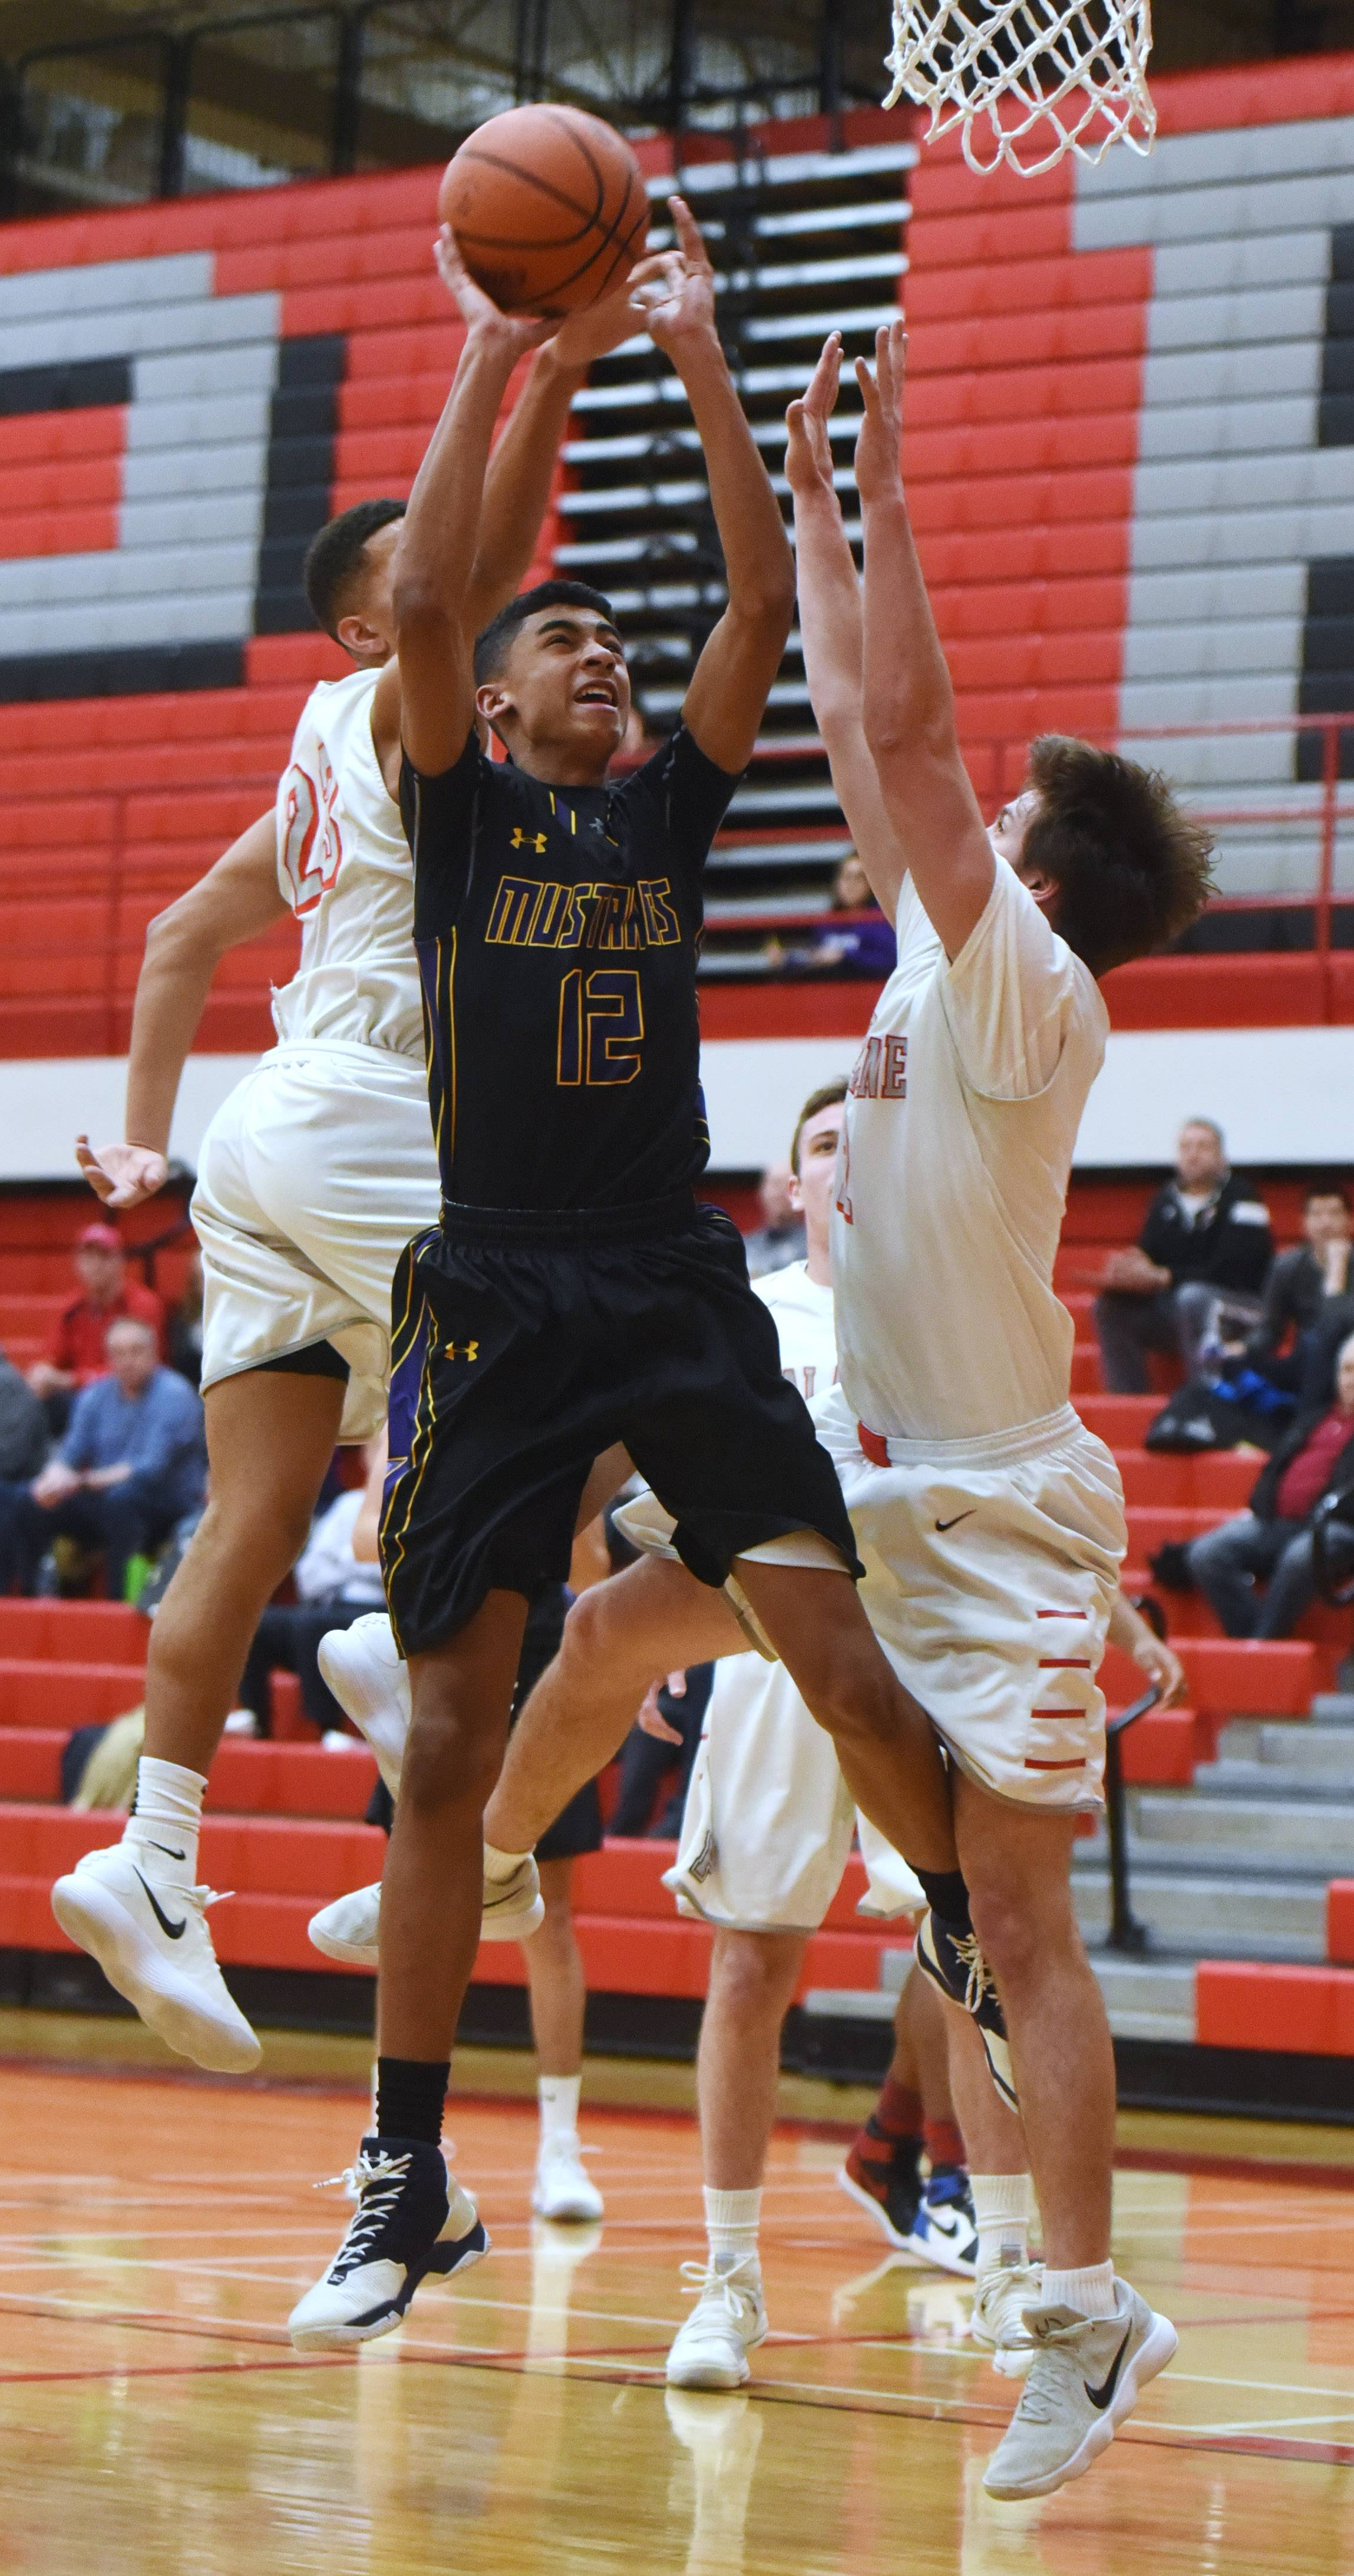 Rolling Meadows' Max Christie shoots against the defense of Palatine's Lamon Berry, left, and Johnny O'Shea during Tuesday's game at Palatine.